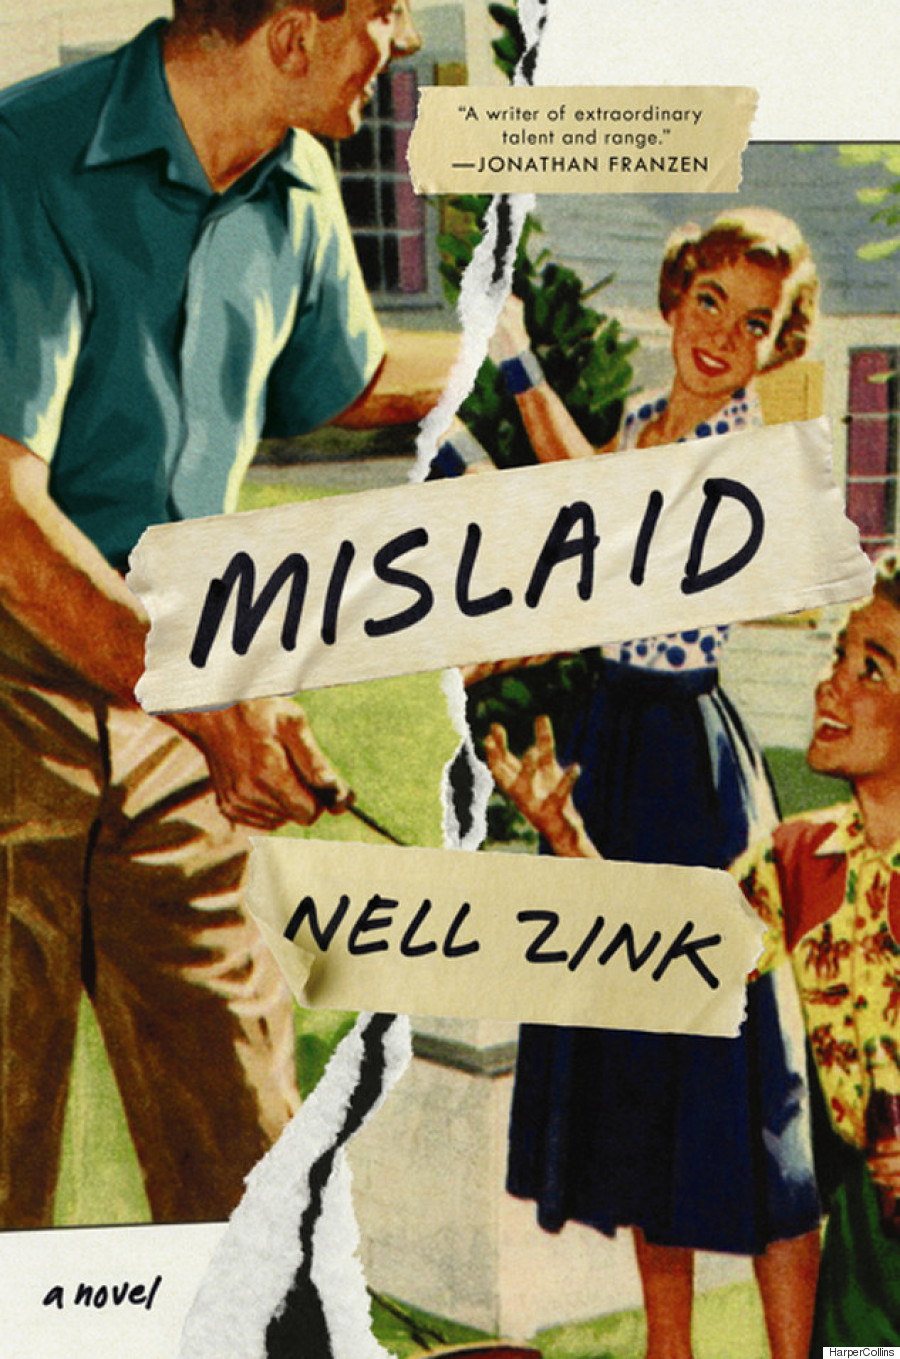 NELL-ZINK-book-mislaid-huck